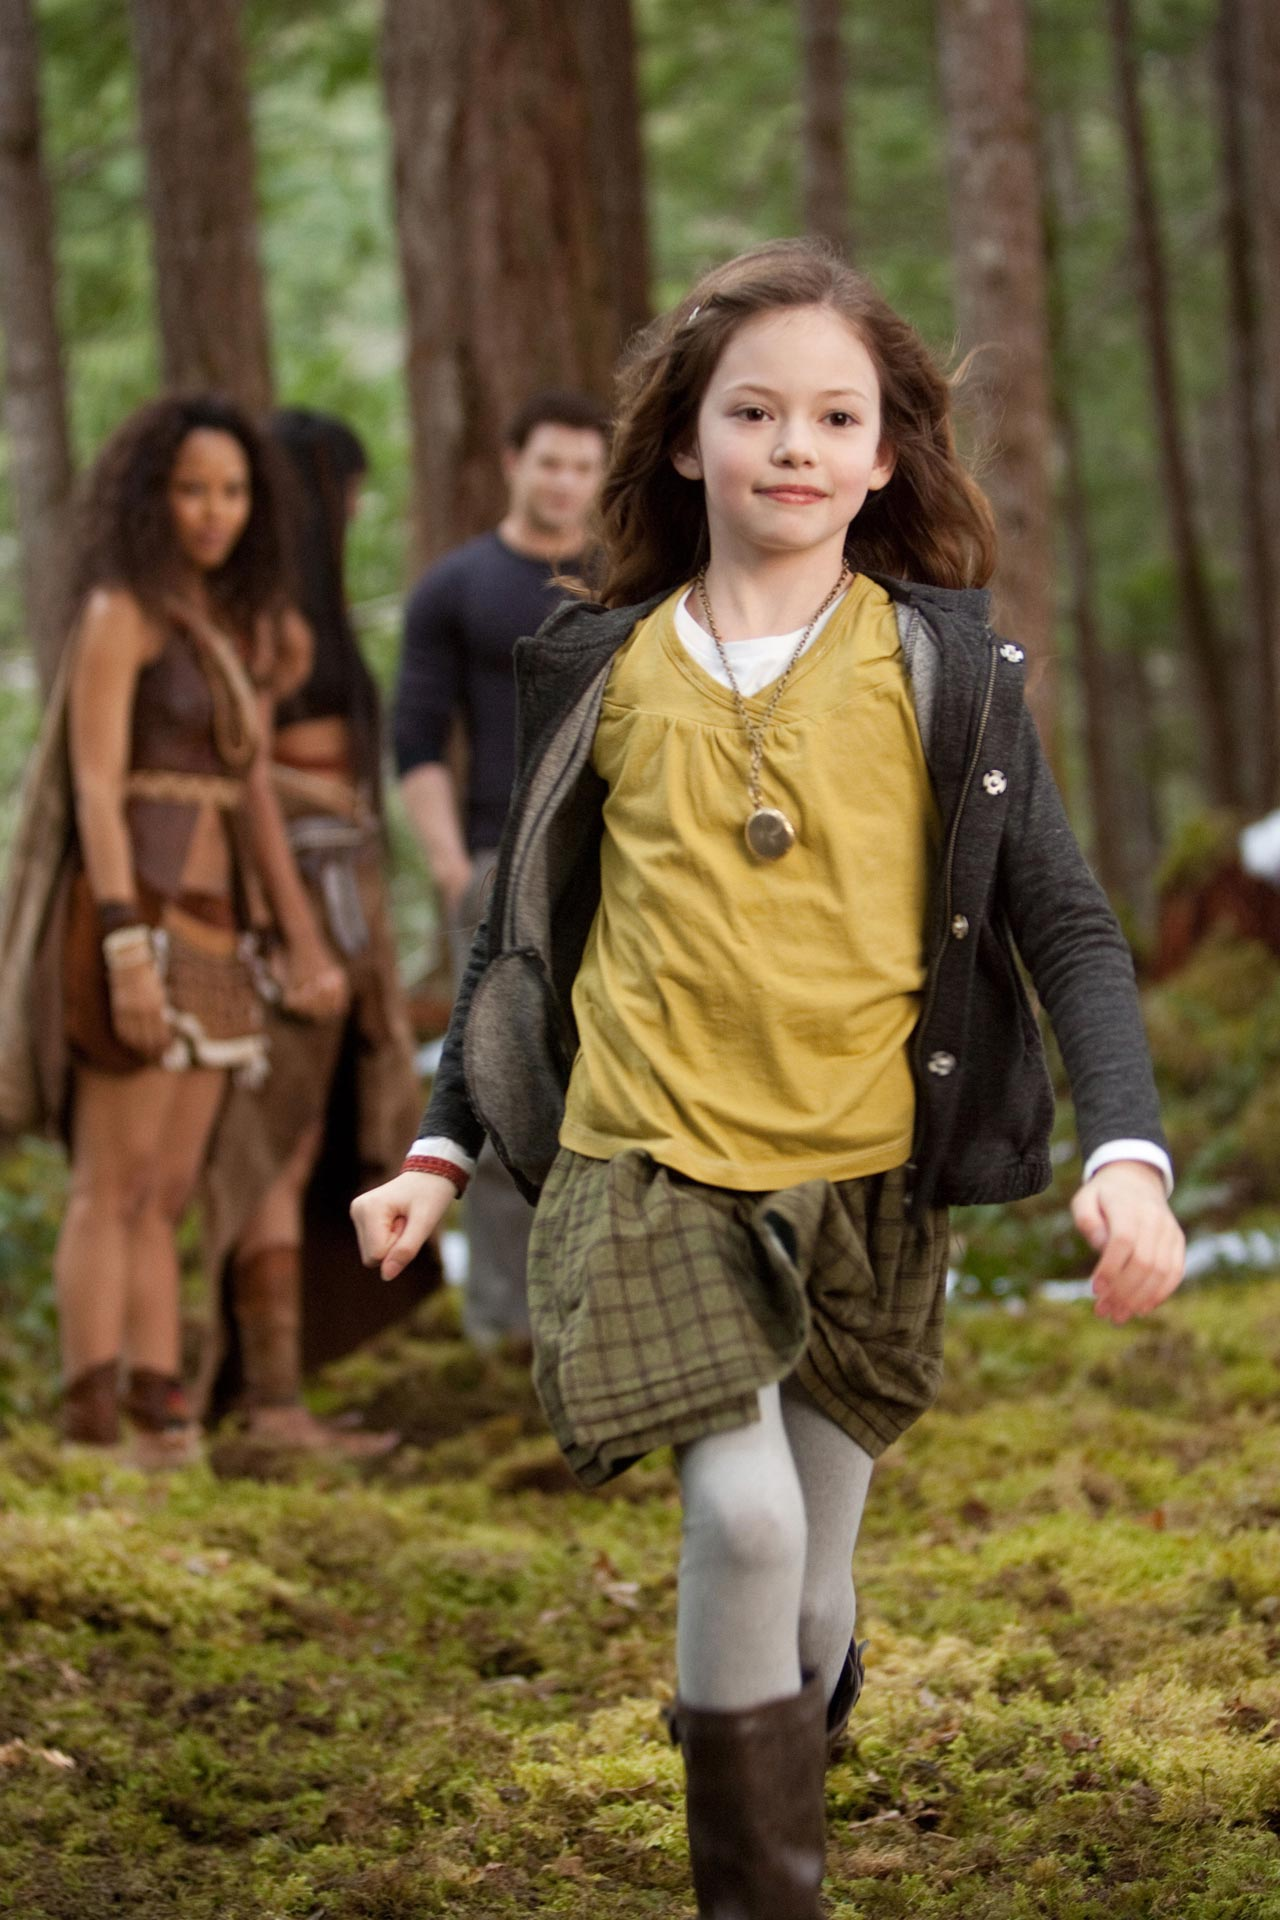 twilight lover forever!!! images Renesmee Cullen HD ...